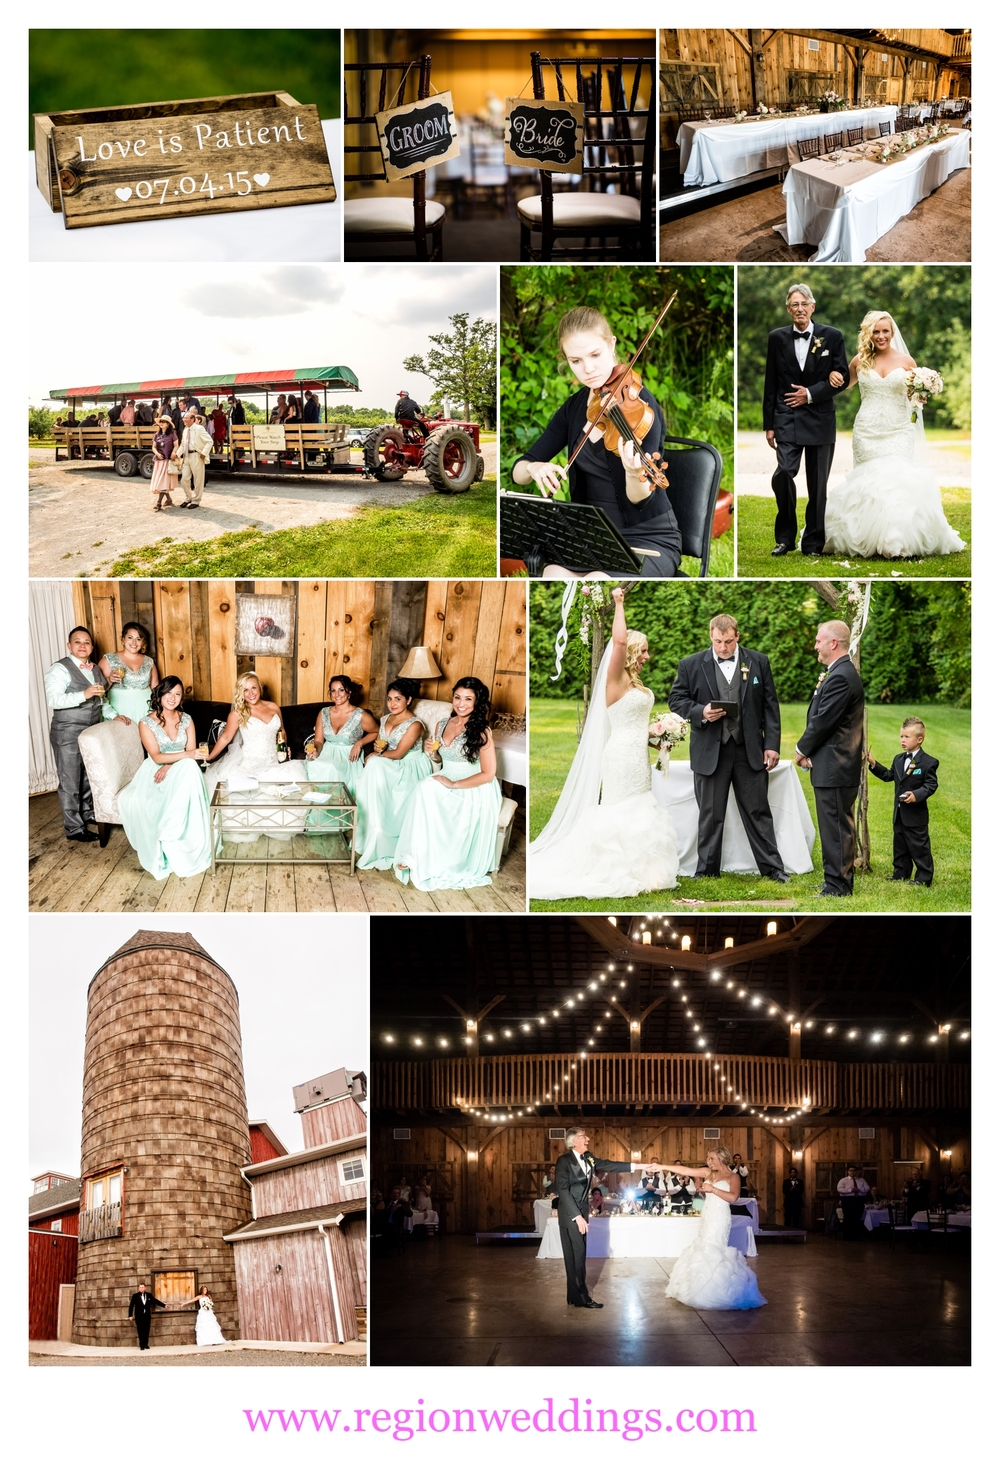 Rustic weddings at County Line Orchard in Hobart, Indiana.